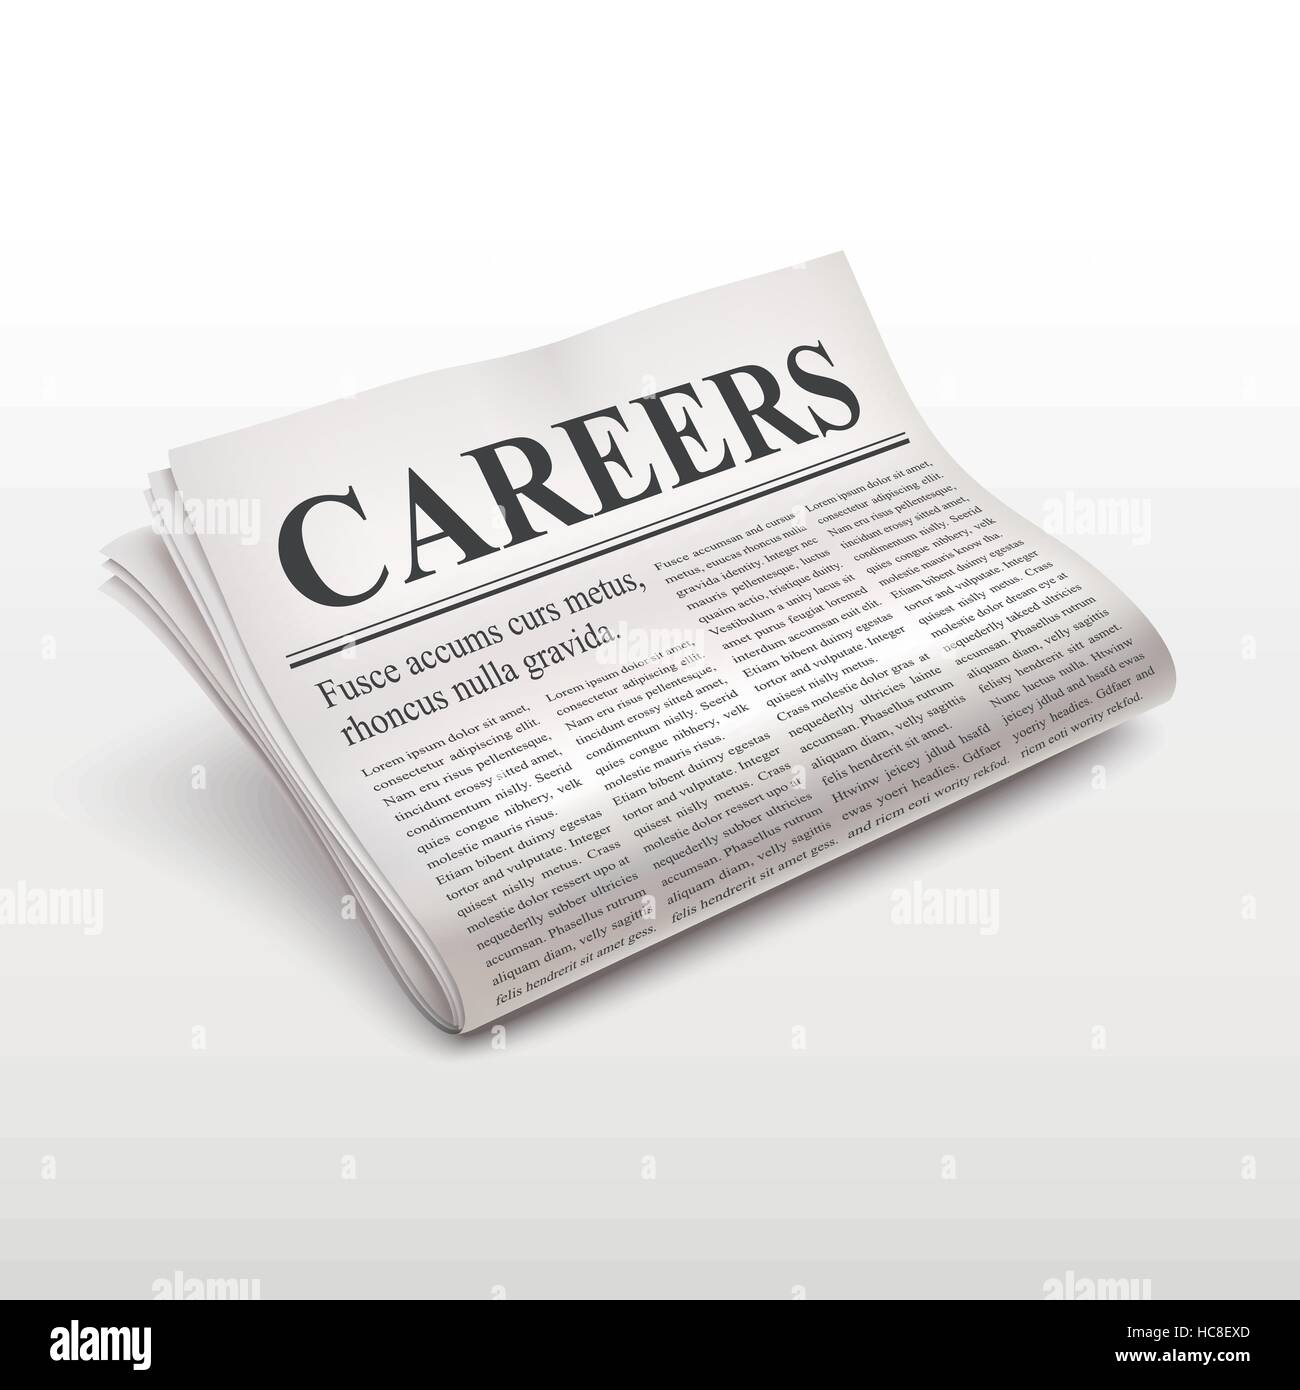 careers word on newspaper over white background - Stock Vector